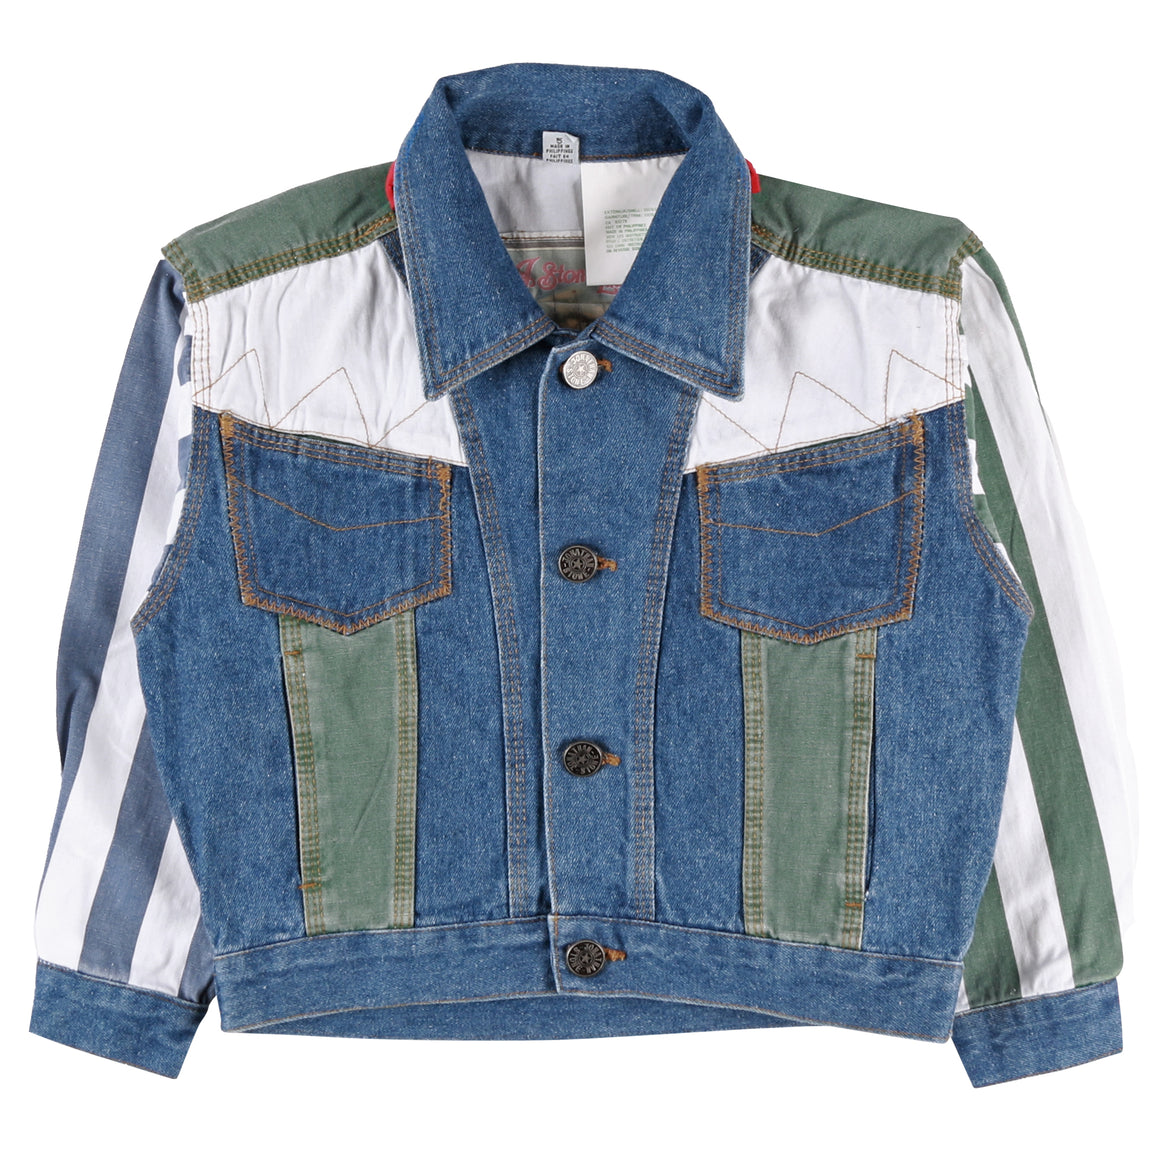 Veste en Denim - Denim Jacket